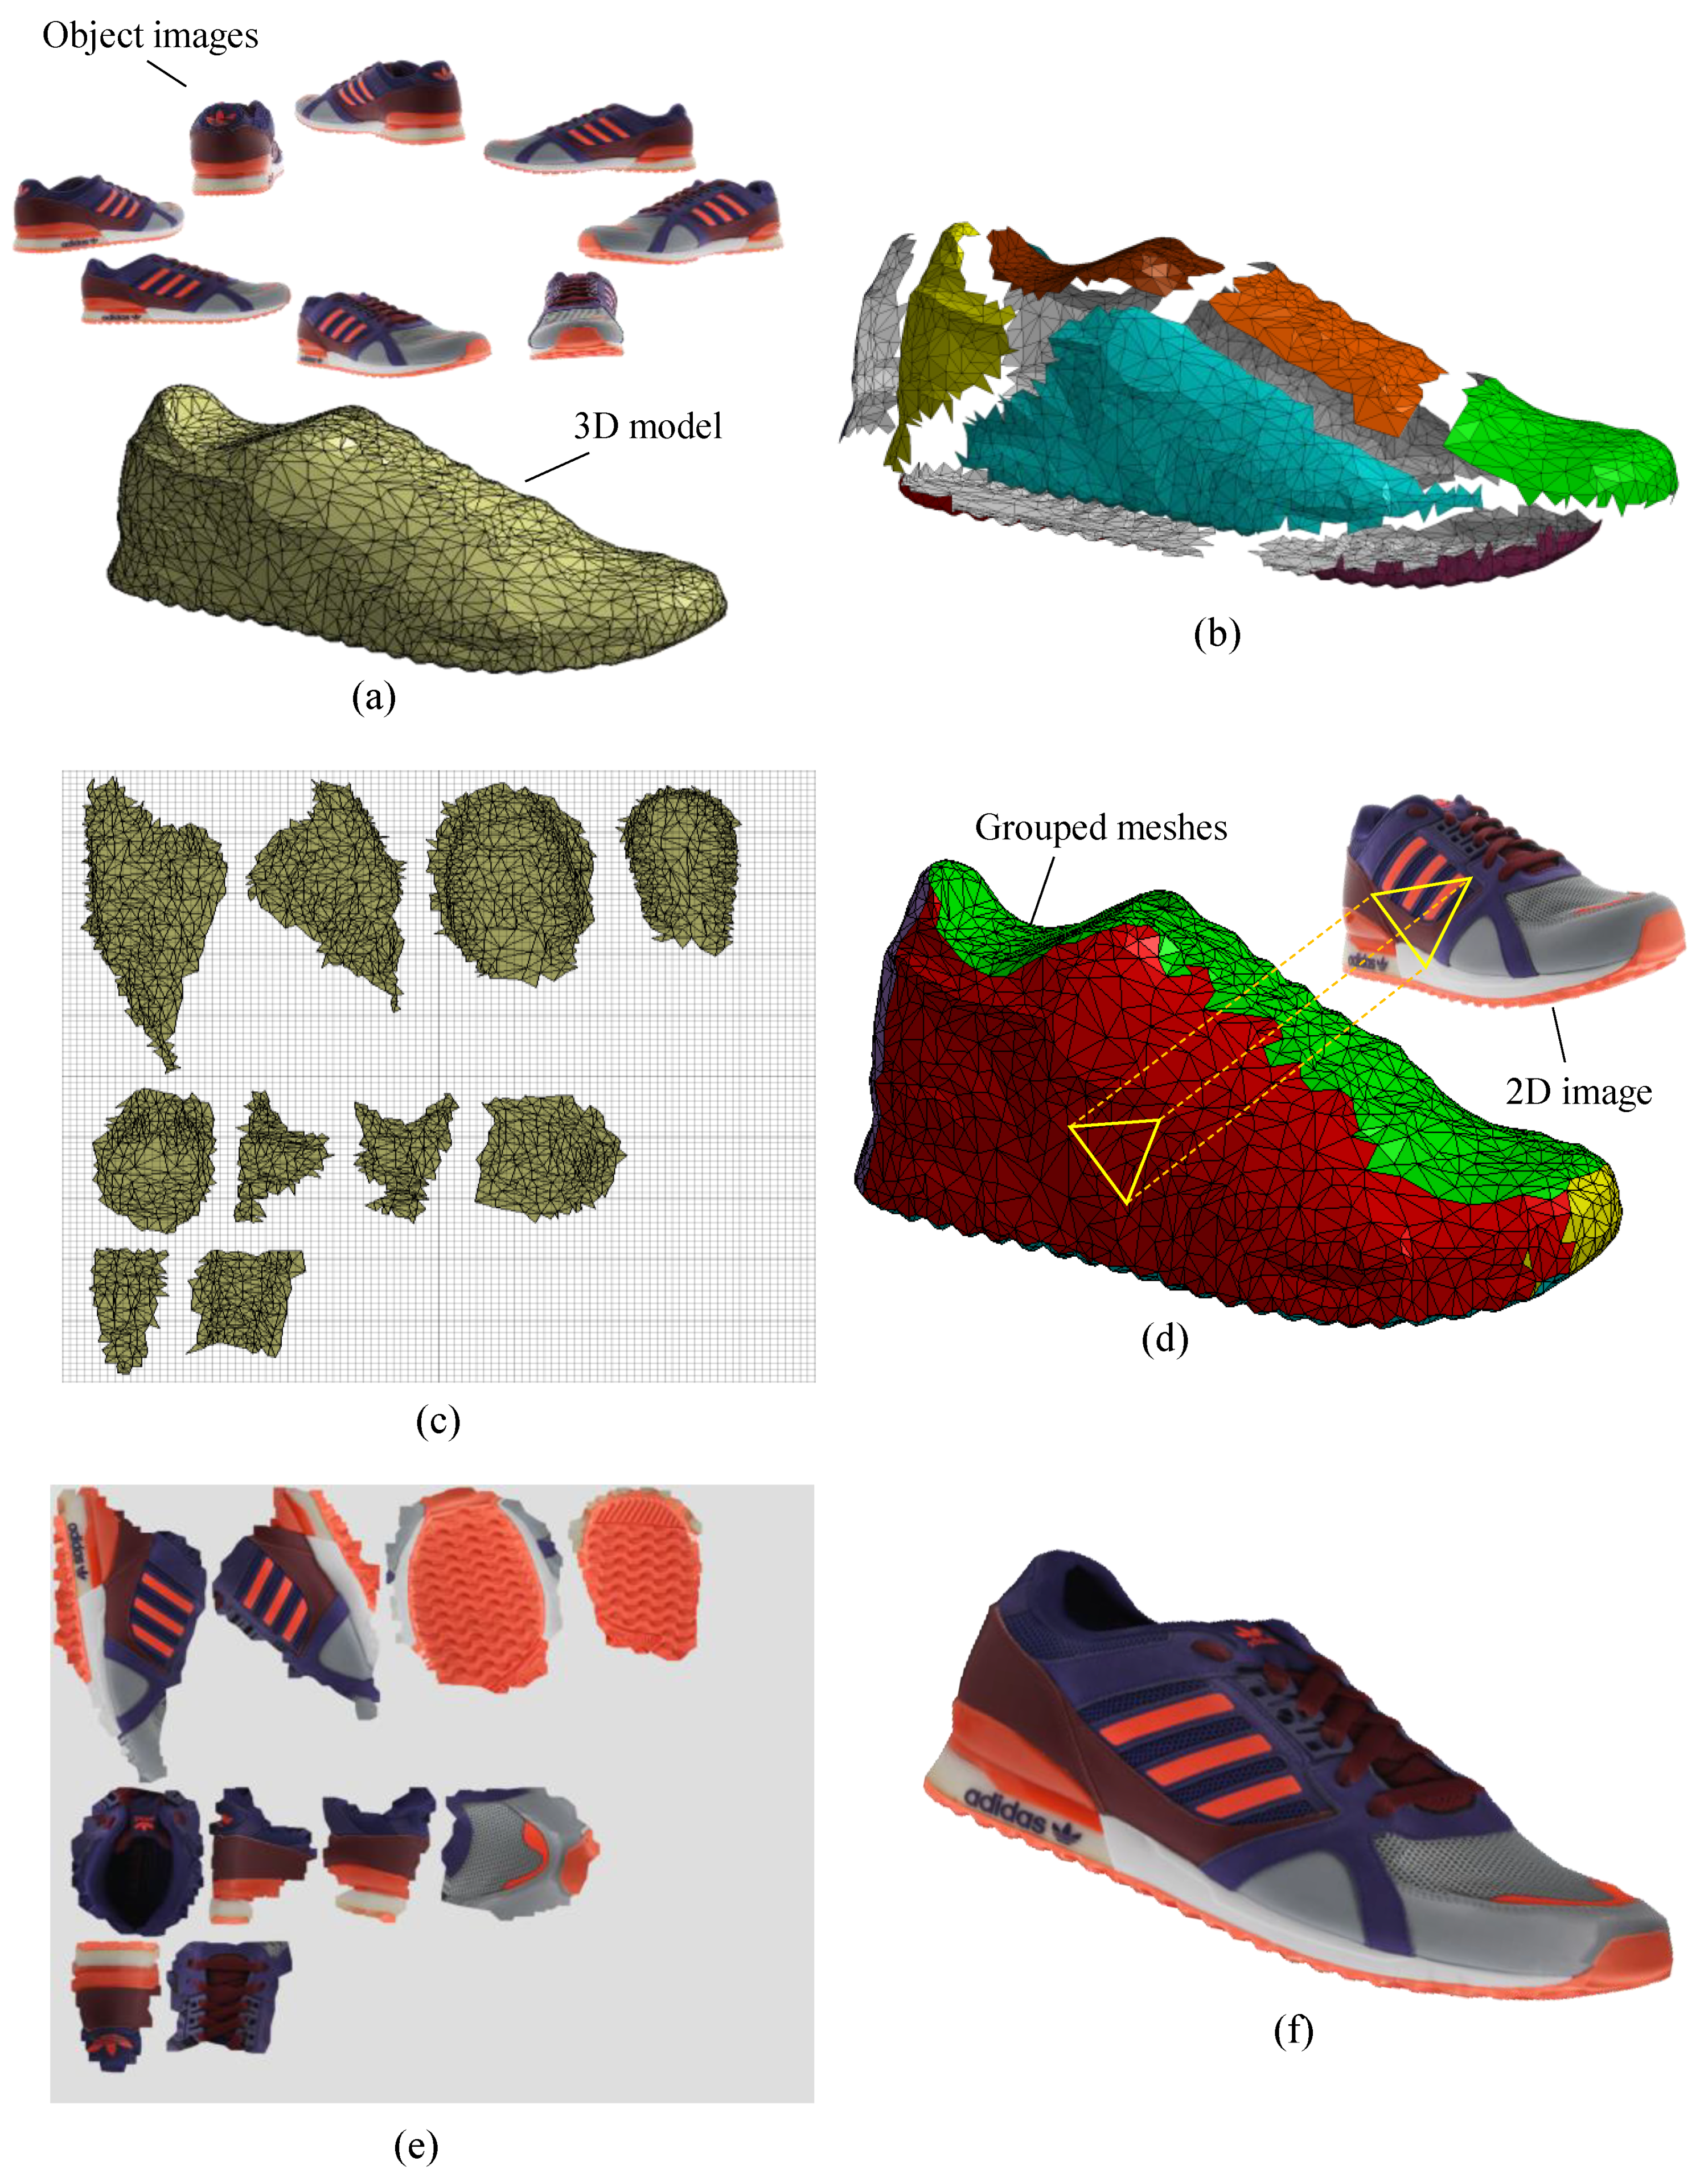 Applied Sciences | Free Full-Text | A High-Resolution Texture ... on skin mapping, motion blur, function mapping, phong shading, mip mapping, alpha blending, character mapping, noise mapping, contour mapping, emotion mapping, flat shading, smooth shading, heat mapping, value mapping, text mapping, uv mapping, perspective correction, ray tracing, pressure mapping, landscape mapping, global illumination, bilinear filtering, bump mapping, color mapping, flow mapping, food mapping, tone mapping, gouraud shading, shadow mapping,